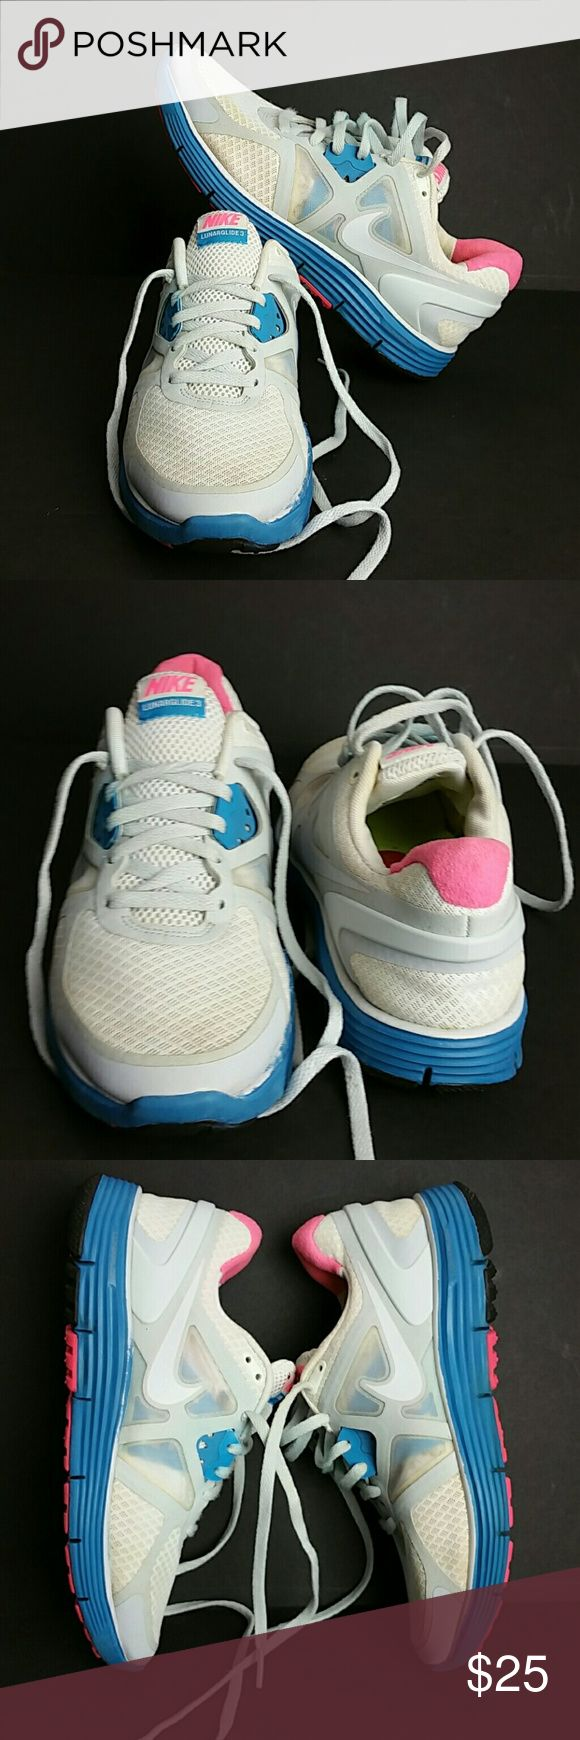 NIKE LUNARGLIDE 3 III WOMEN SHOES IN GOOD CONDITION WITH SCUFFS ON THE SOLE AS YOU CAN SEE IN THE LAST PICTURE WHICH IS NOT NOTICEABLE WHEN YOU HAVE IT ON   SKE # PO2PO NIKE Shoes Athletic Shoes